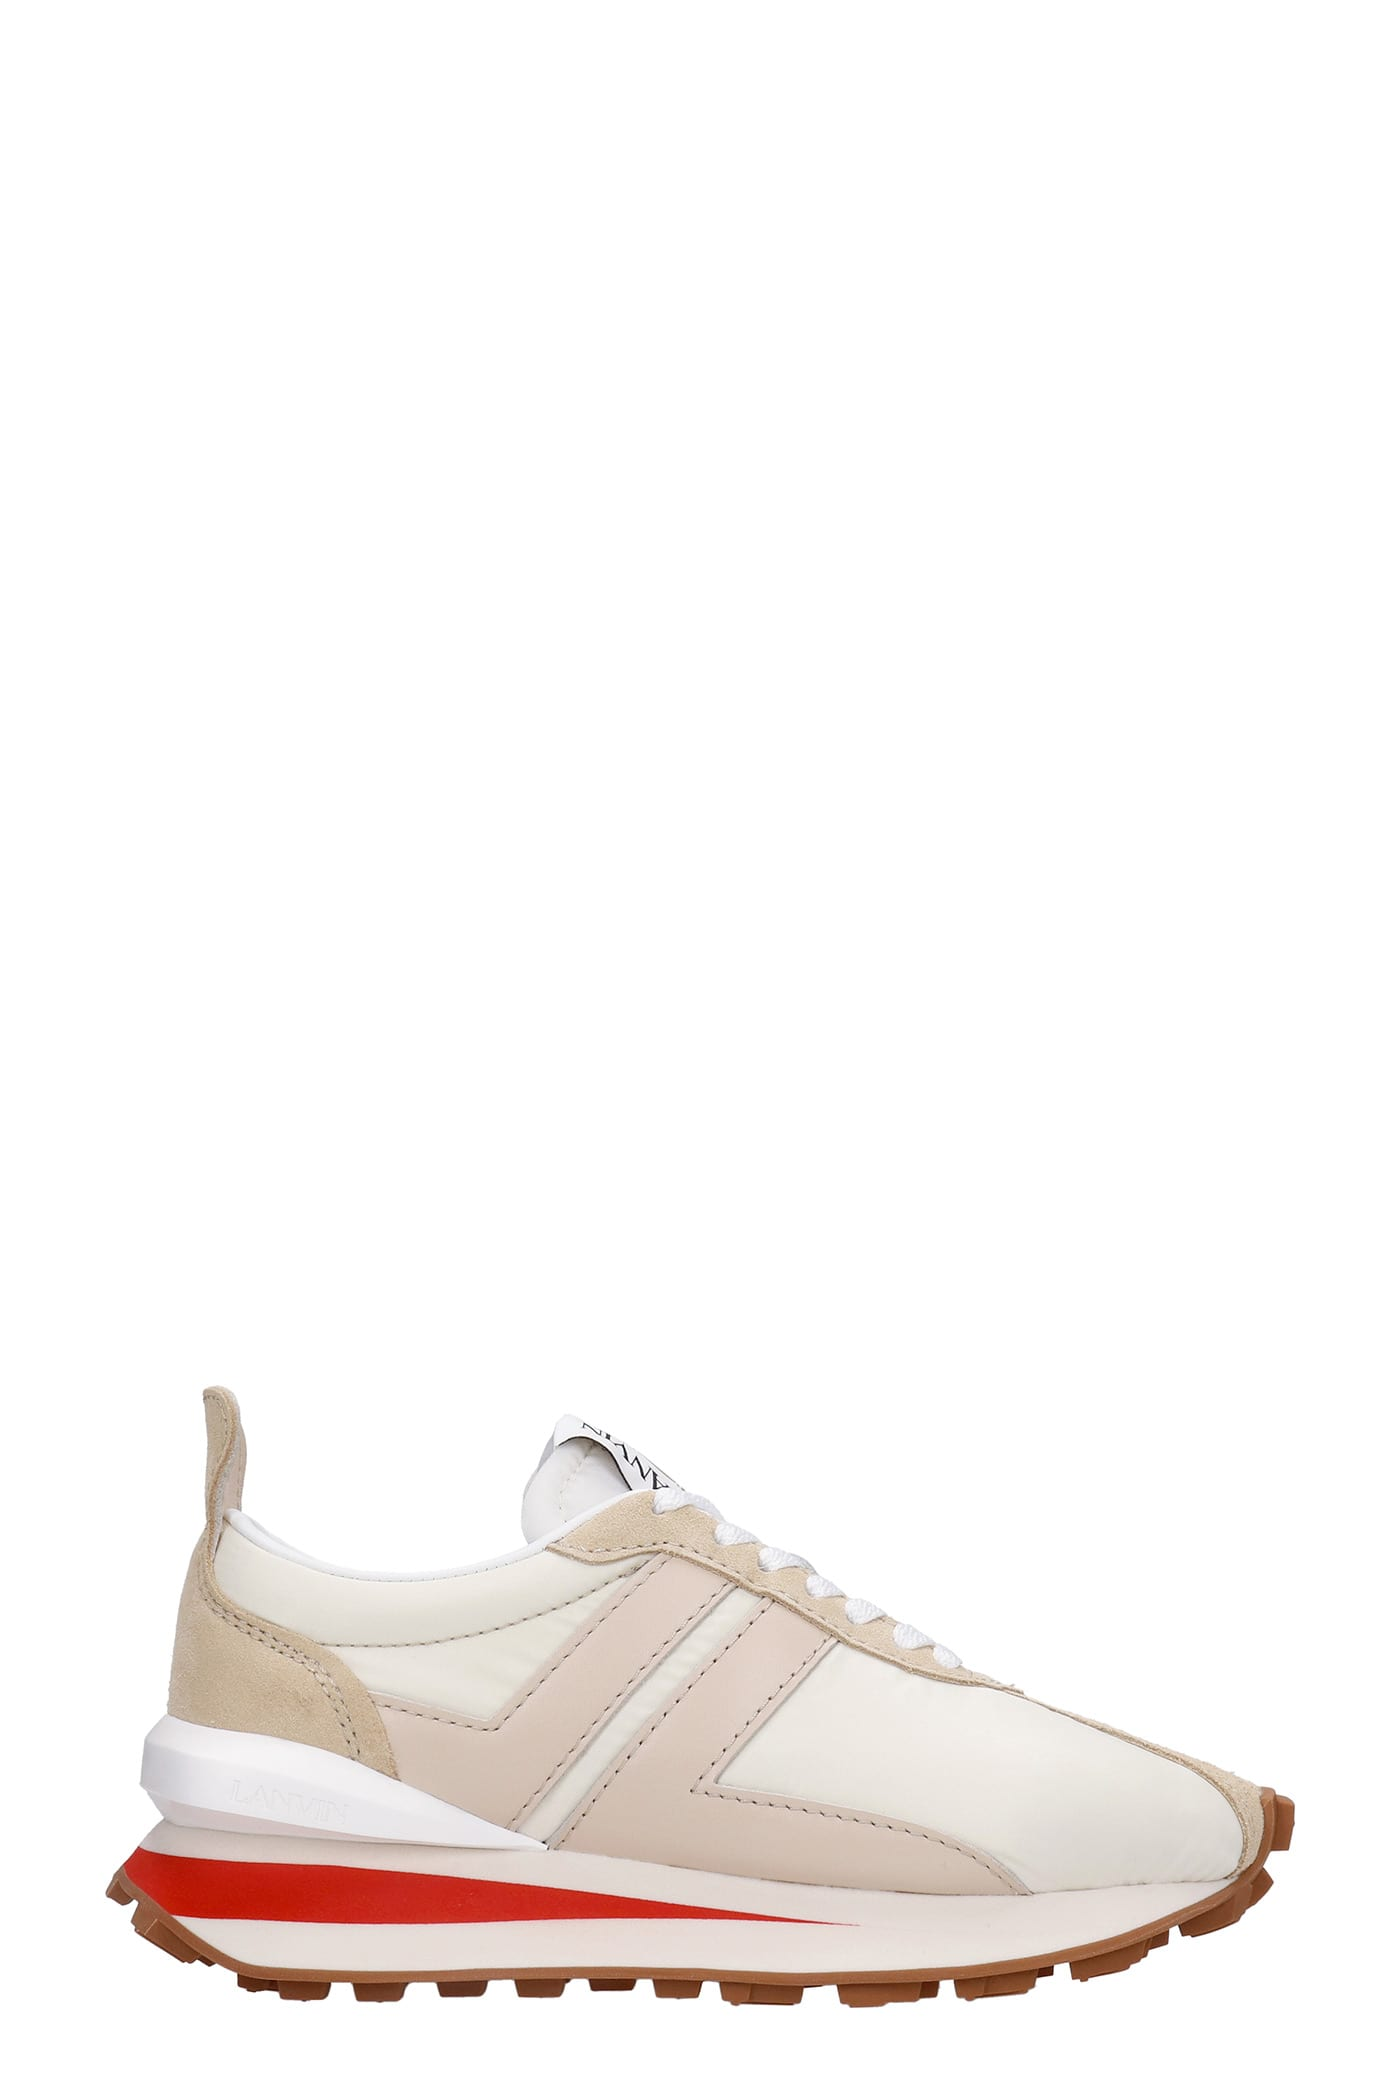 Buy Lanvin Bumper Sneakers In White Nylon online, shop Lanvin shoes with free shipping